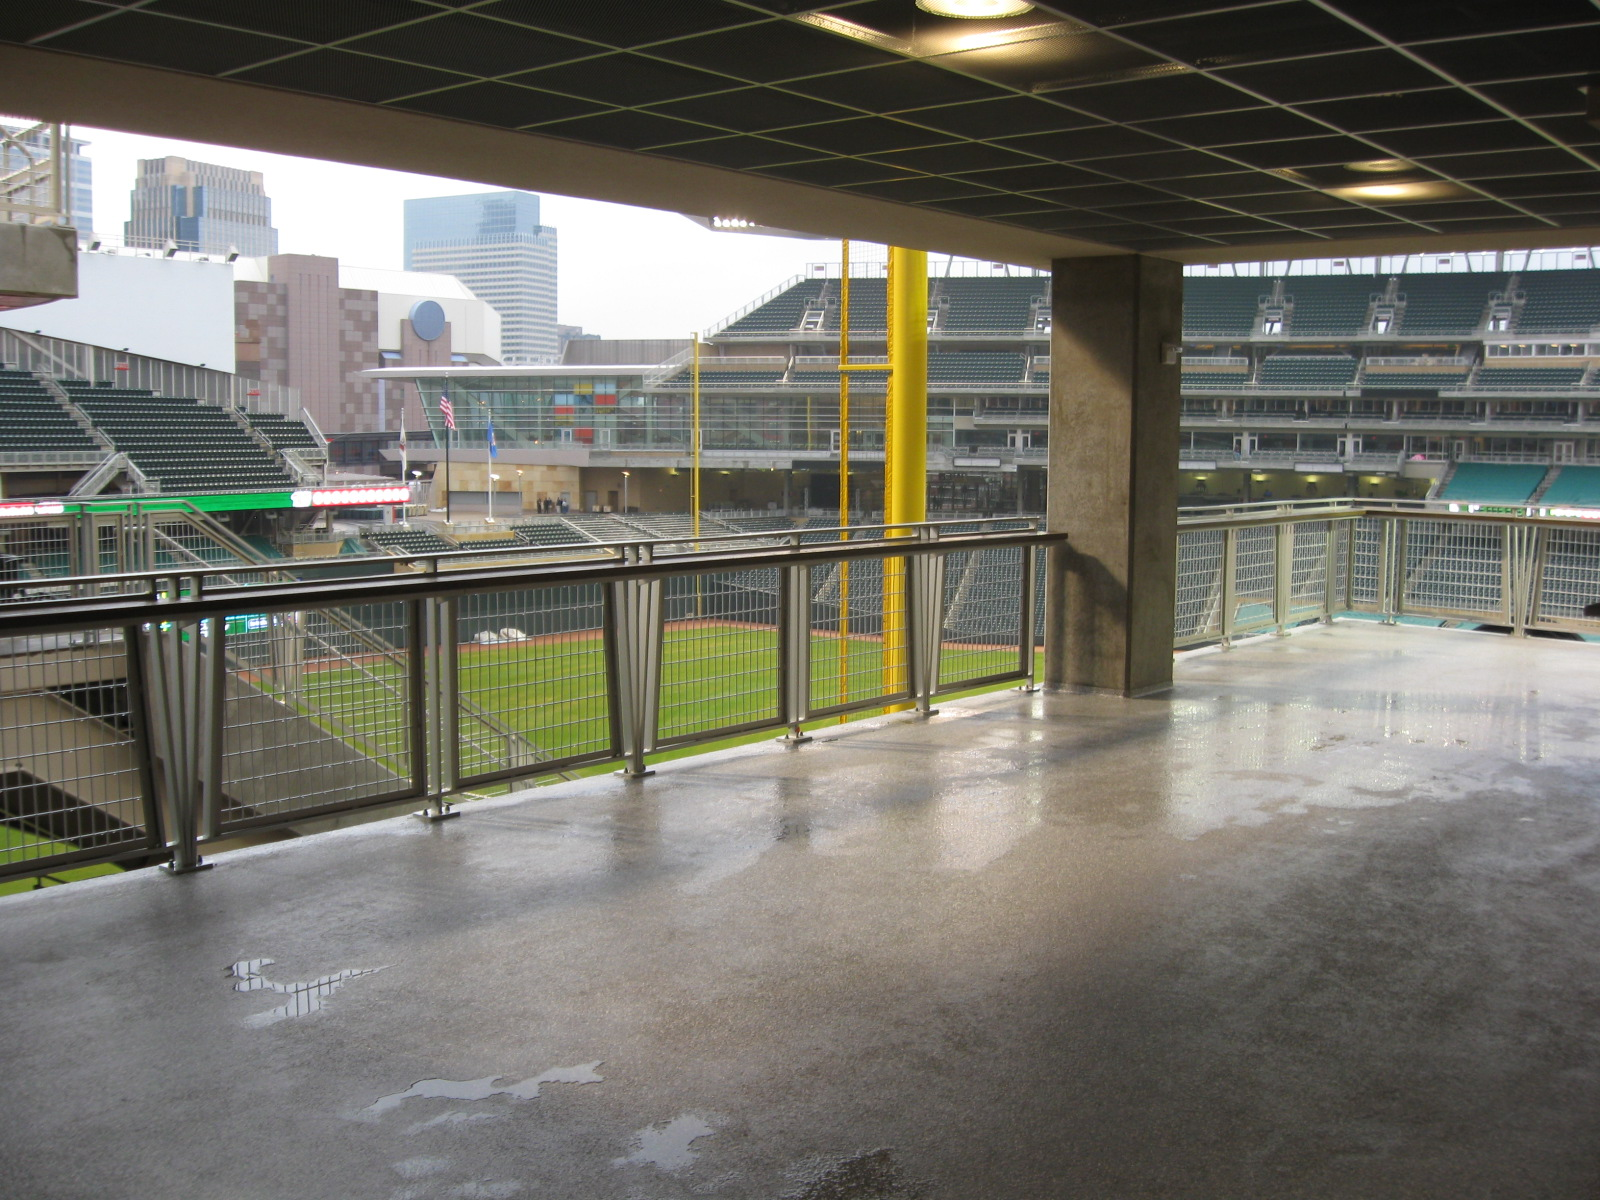 target field pictures. Target Field 46